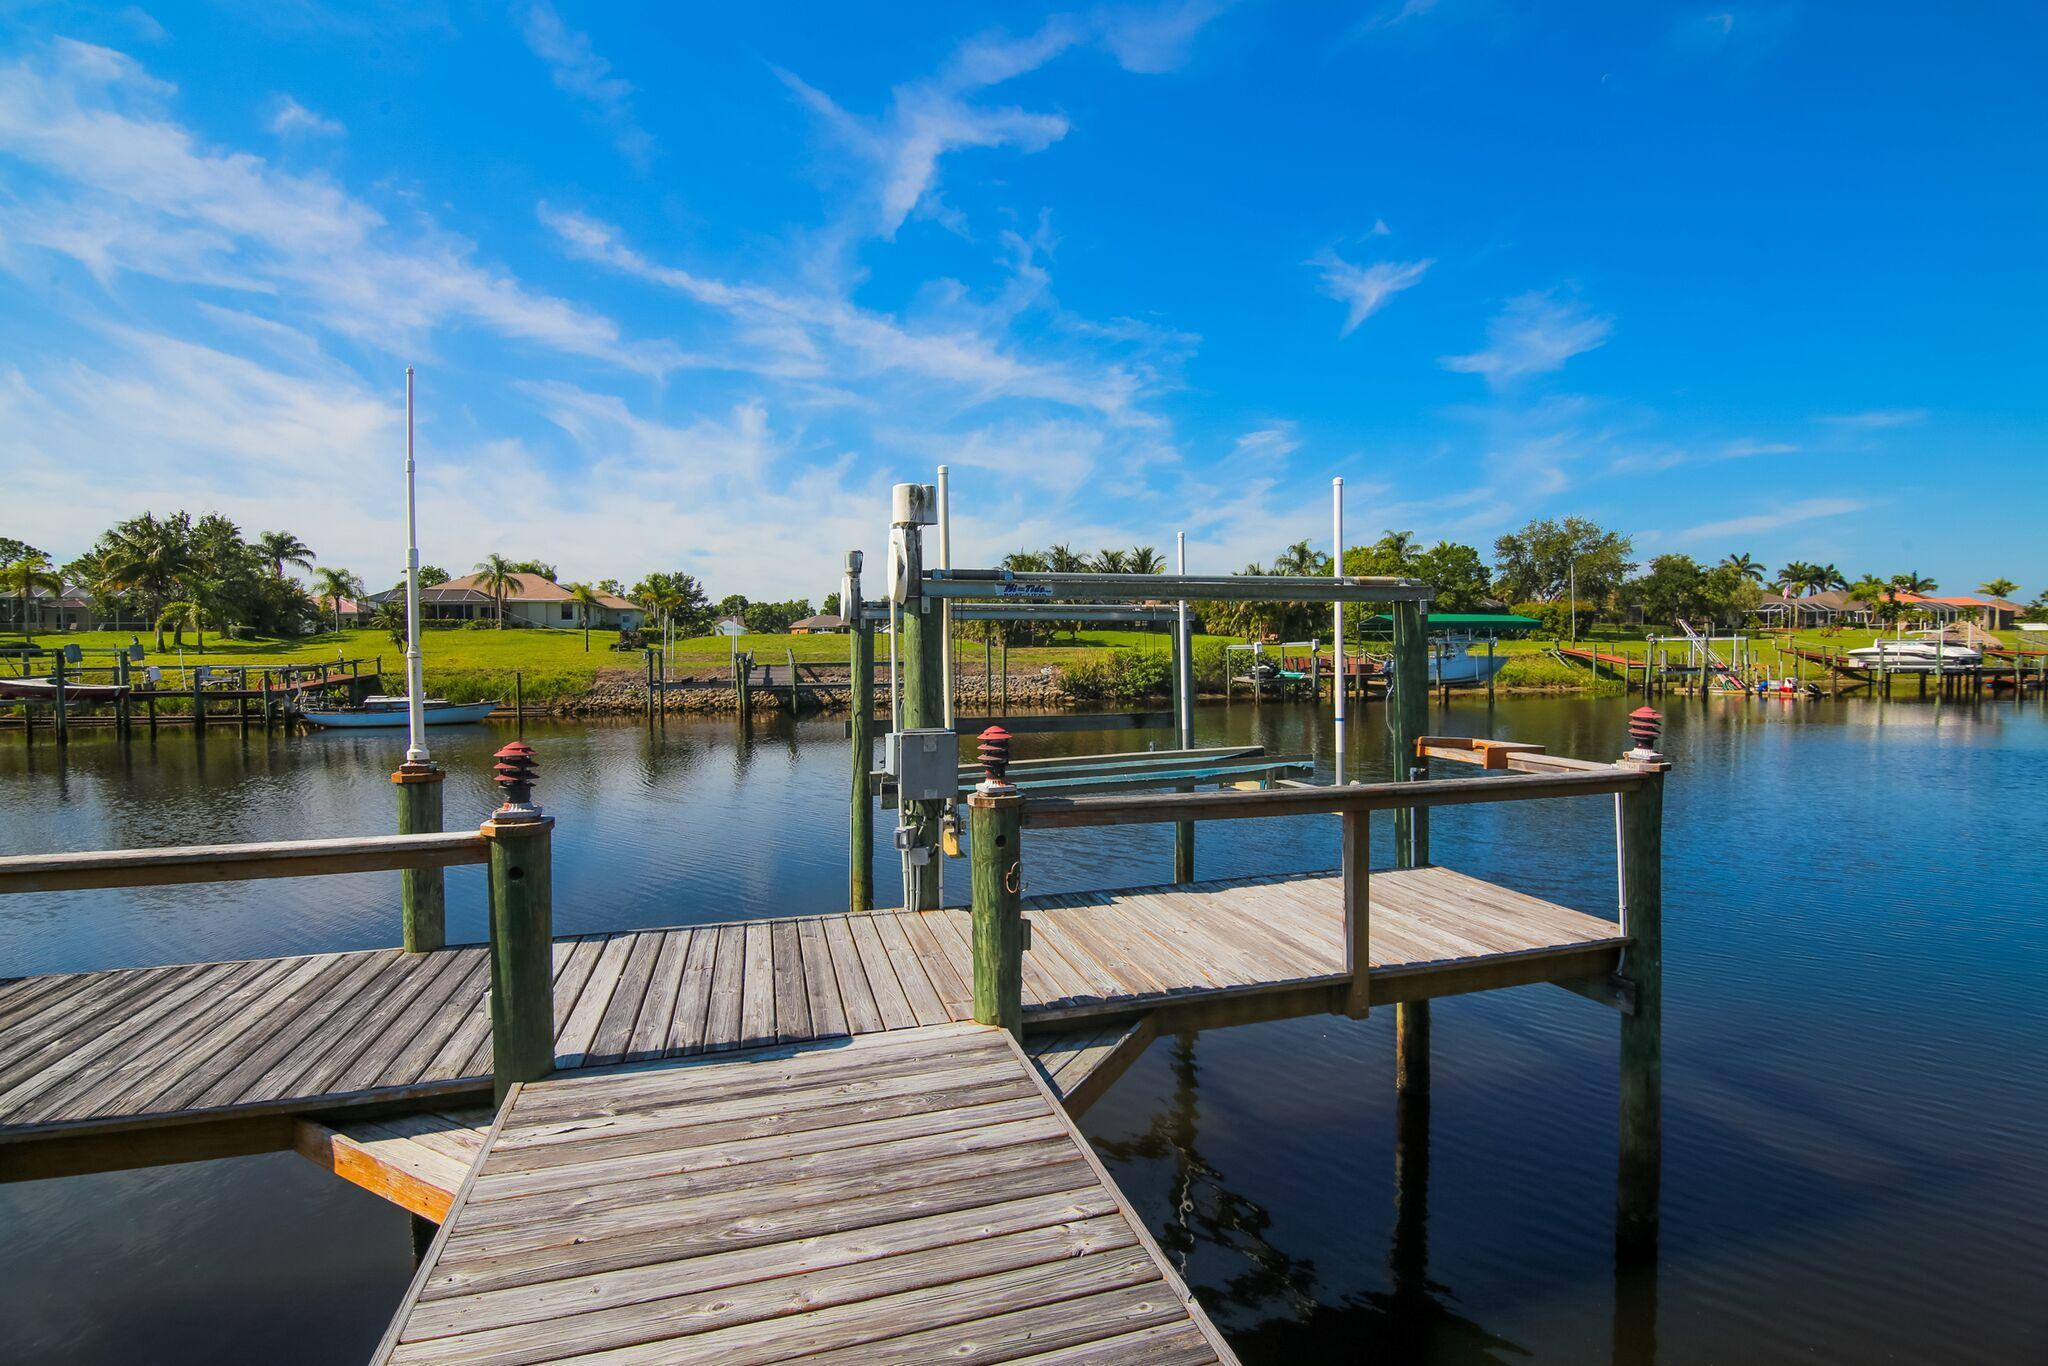 SOUTH RIVER SHORES LOT 15 (OR 3908-1903)